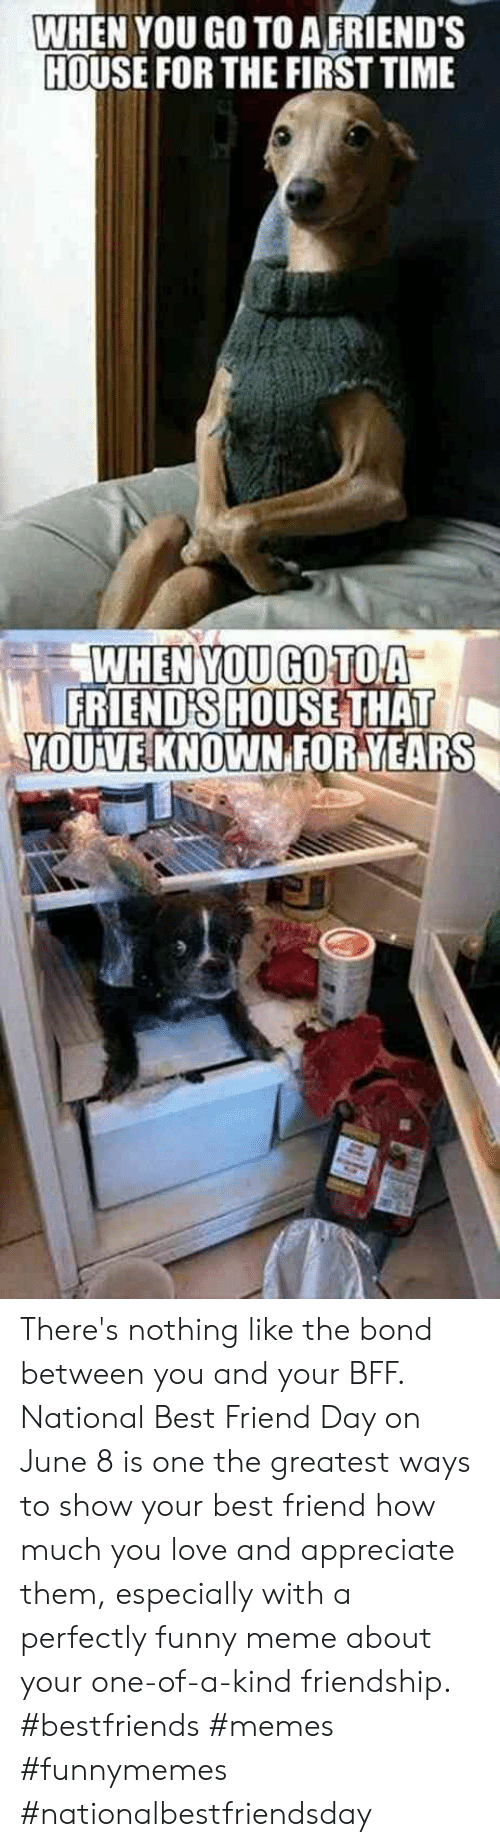 national best friend day: WHEN YOU GO TO A FRIEND'S  HOUSE FOR THE FIRST TIME  WHEN YOU GO TOA  FRIEND'S HOUSE THAT  YOUVE KNOWN FORYEARS There's nothing like the bond between you and your BFF. National Best Friend Day on June 8 is one the greatest ways to show your best friend how much you love and appreciate them, especially with a perfectly funny meme about your one-of-a-kind friendship.  #bestfriends #memes #funnymemes #nationalbestfriendsday